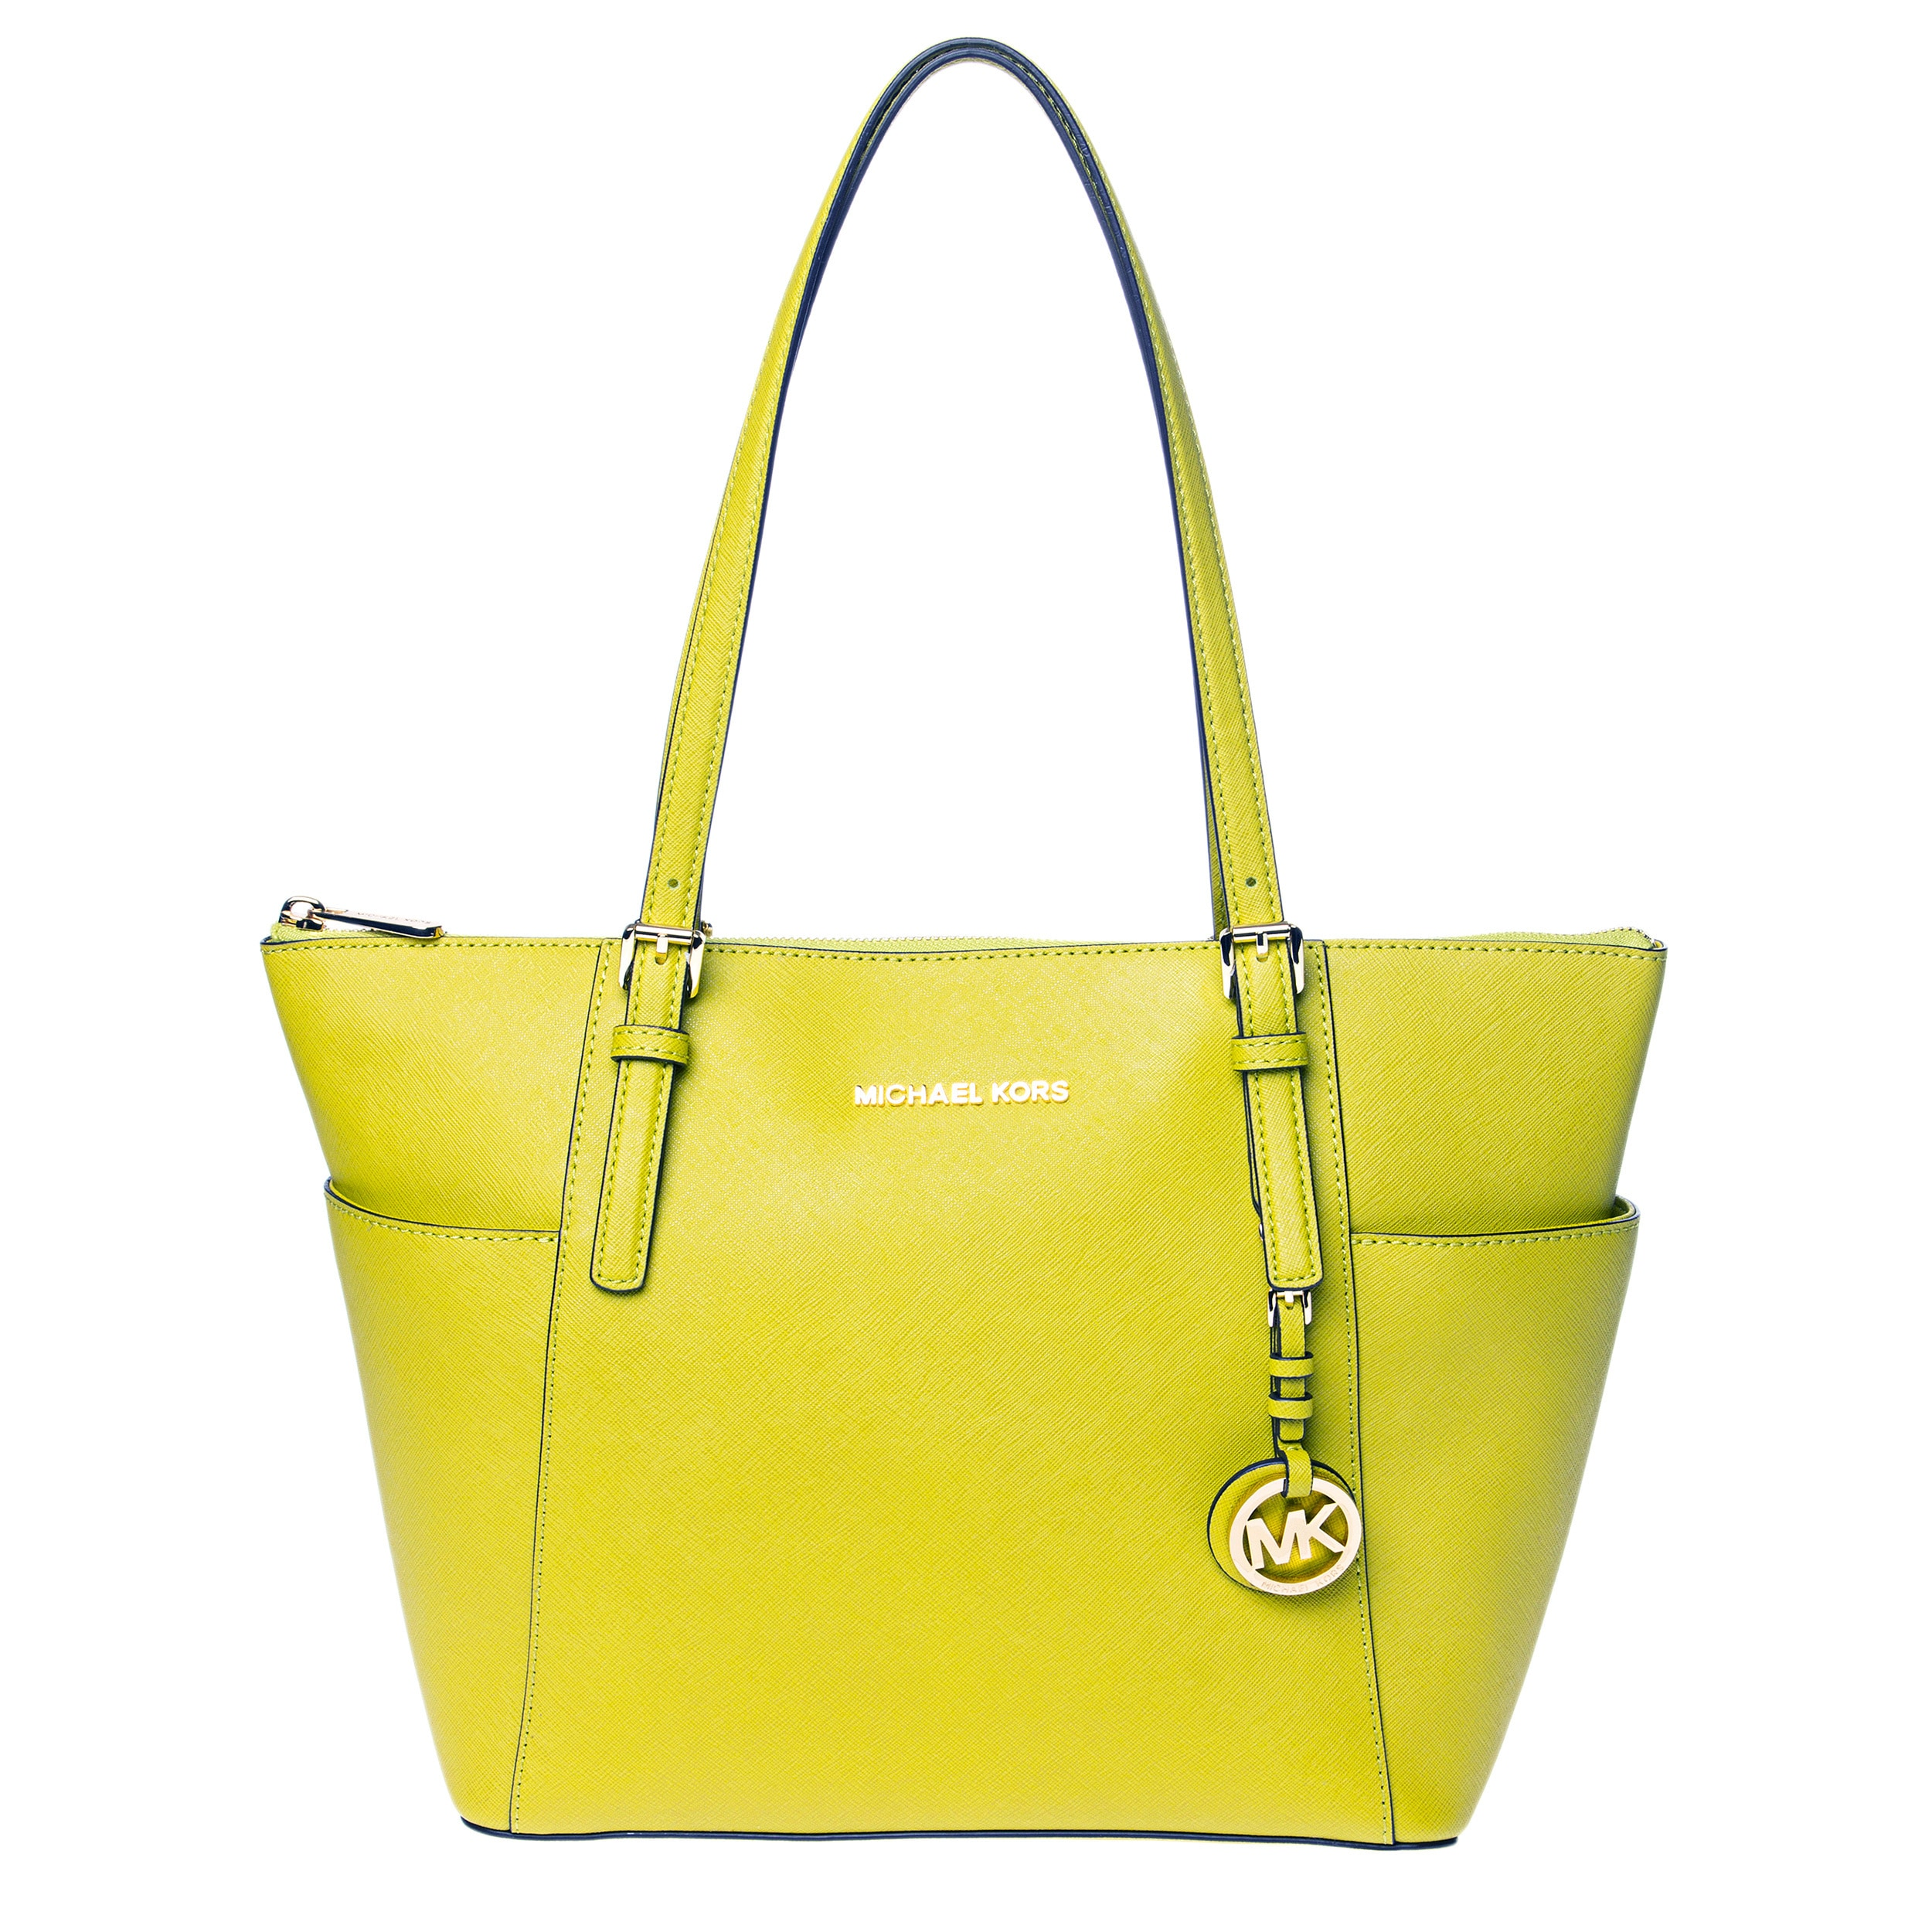 0047ac41b33bf1 Shop Michael Kors Jet Set Medium Pocketed Top Zip Tote Bag - Free Shipping  Today - Overstock - 9167184